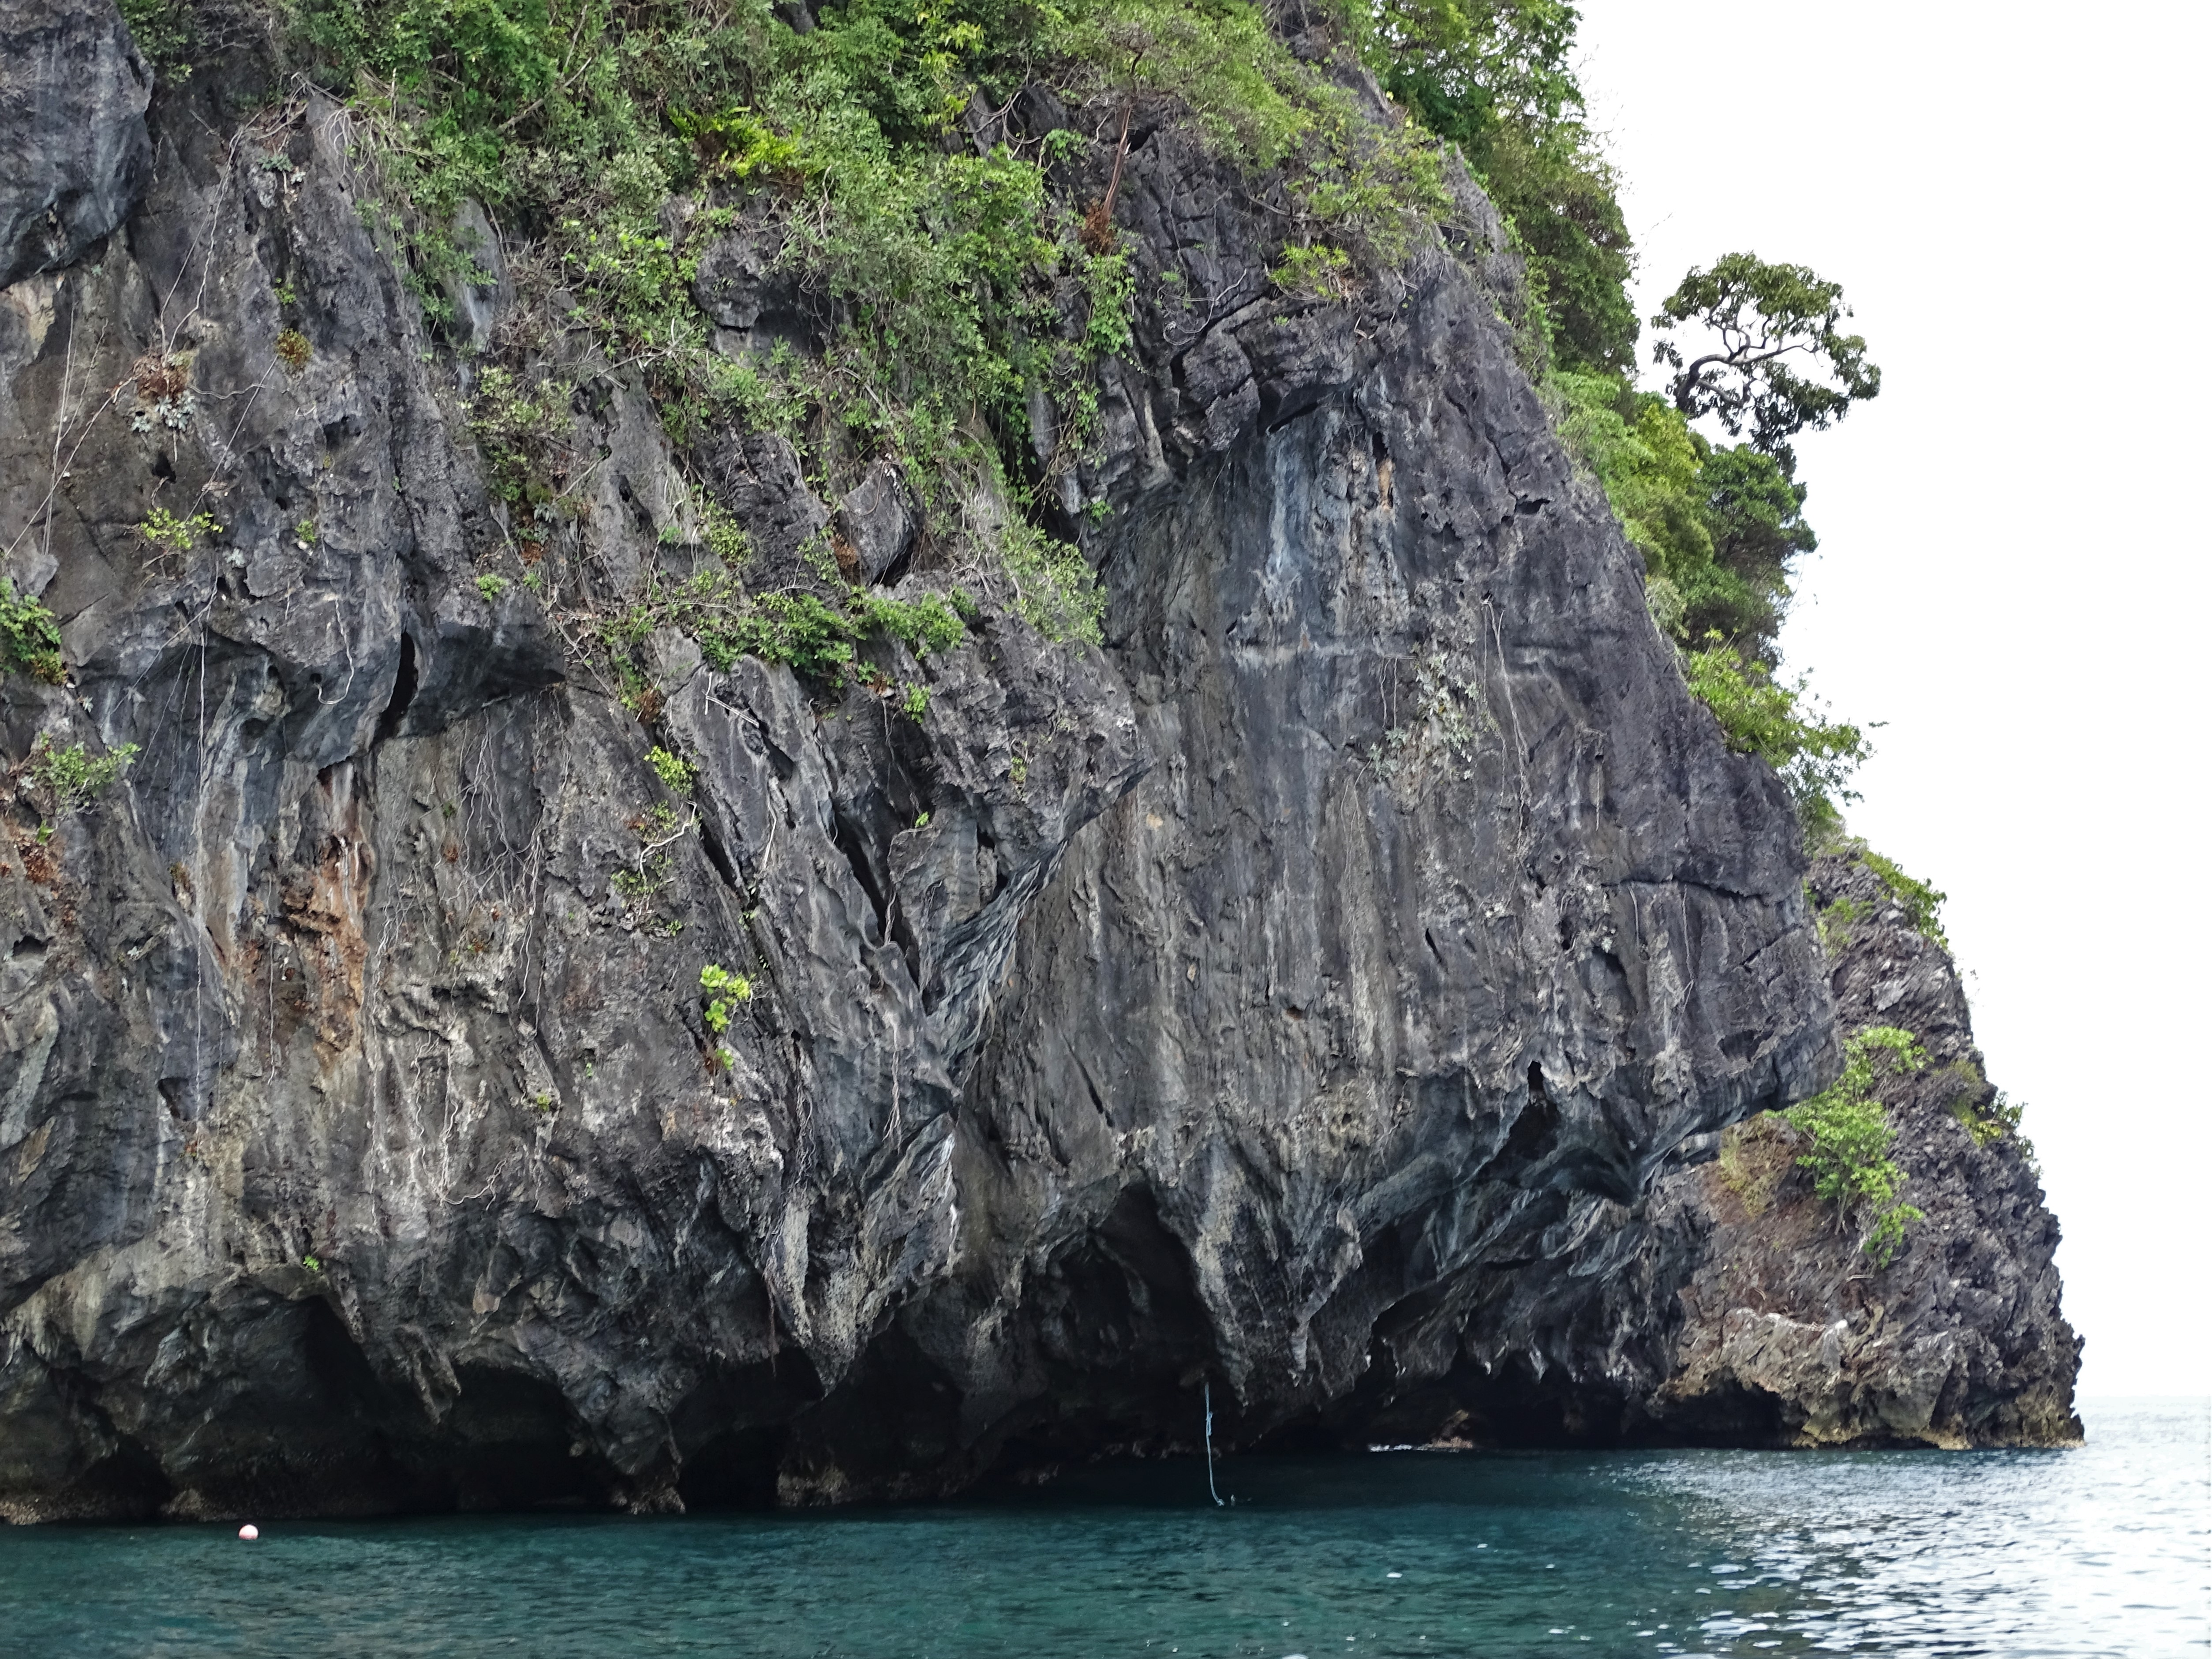 the rock in the sea:  Emerald cave is on the other side